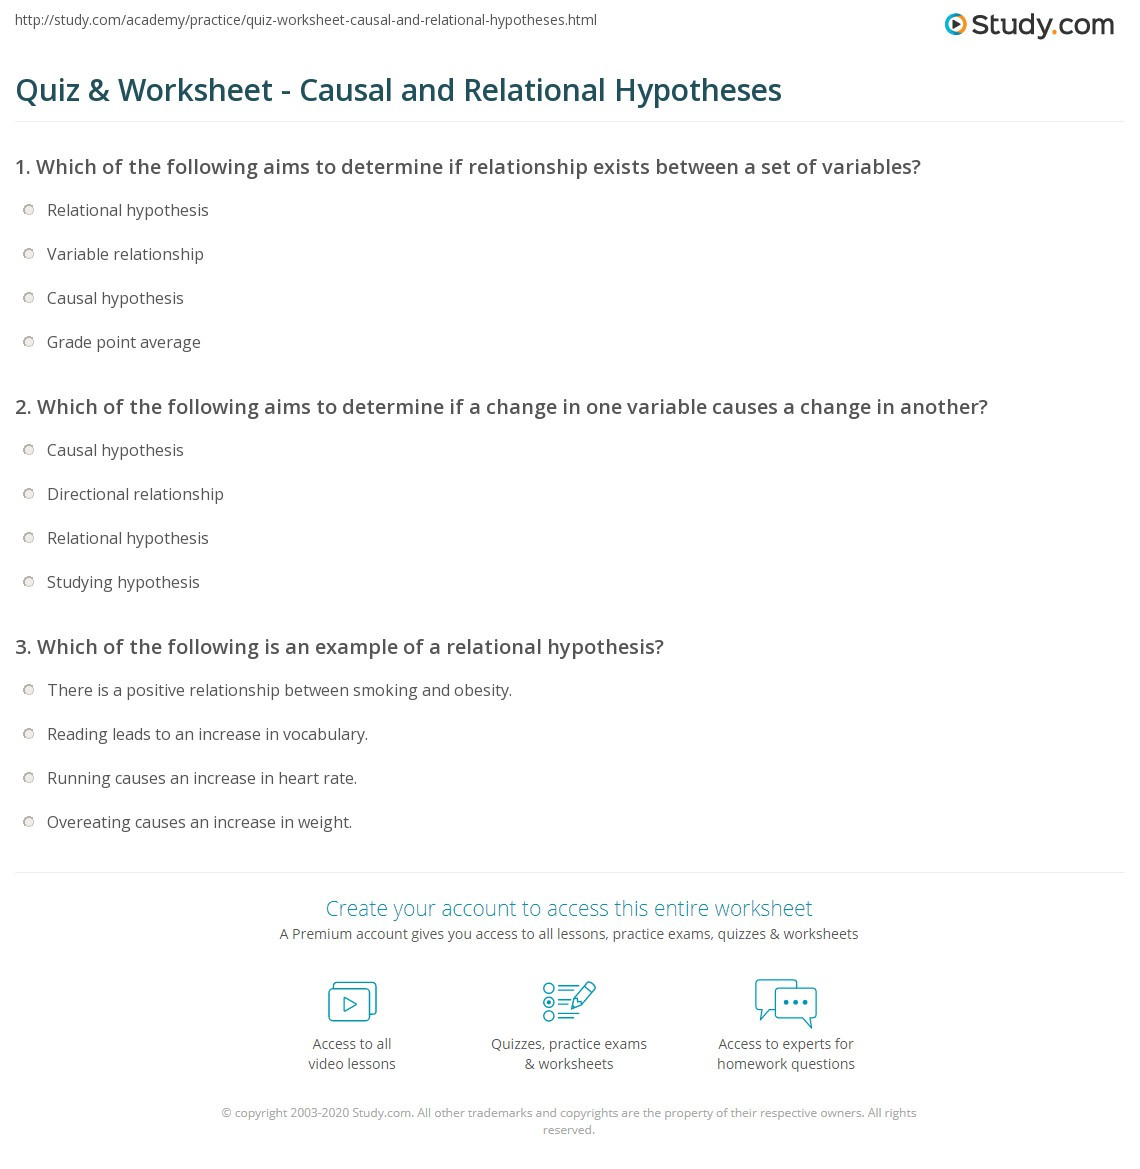 Writing A Hypothesis Worksheet Quiz & Worksheet Causal and Relational Hypotheses